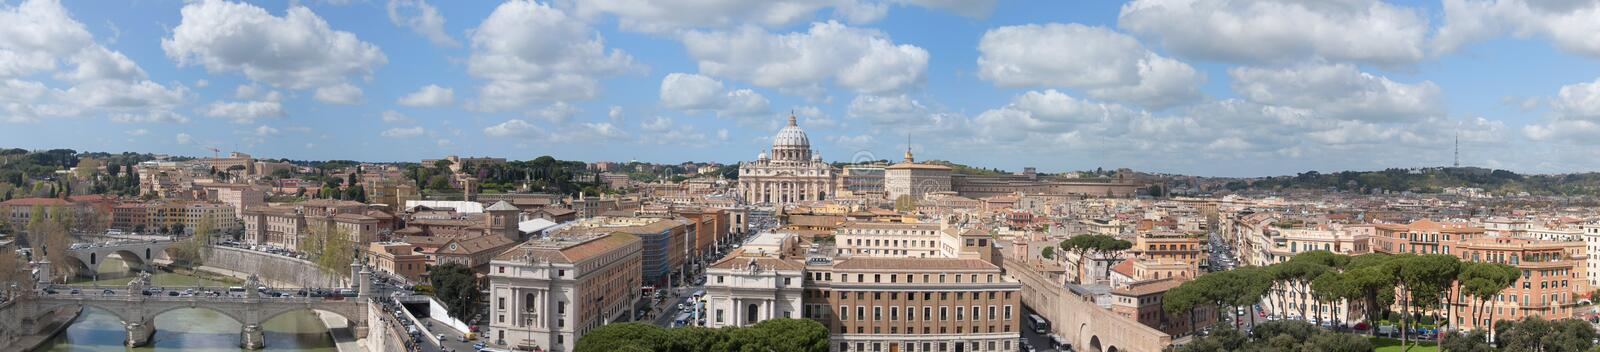 Vatican and Rome Panorama stock image